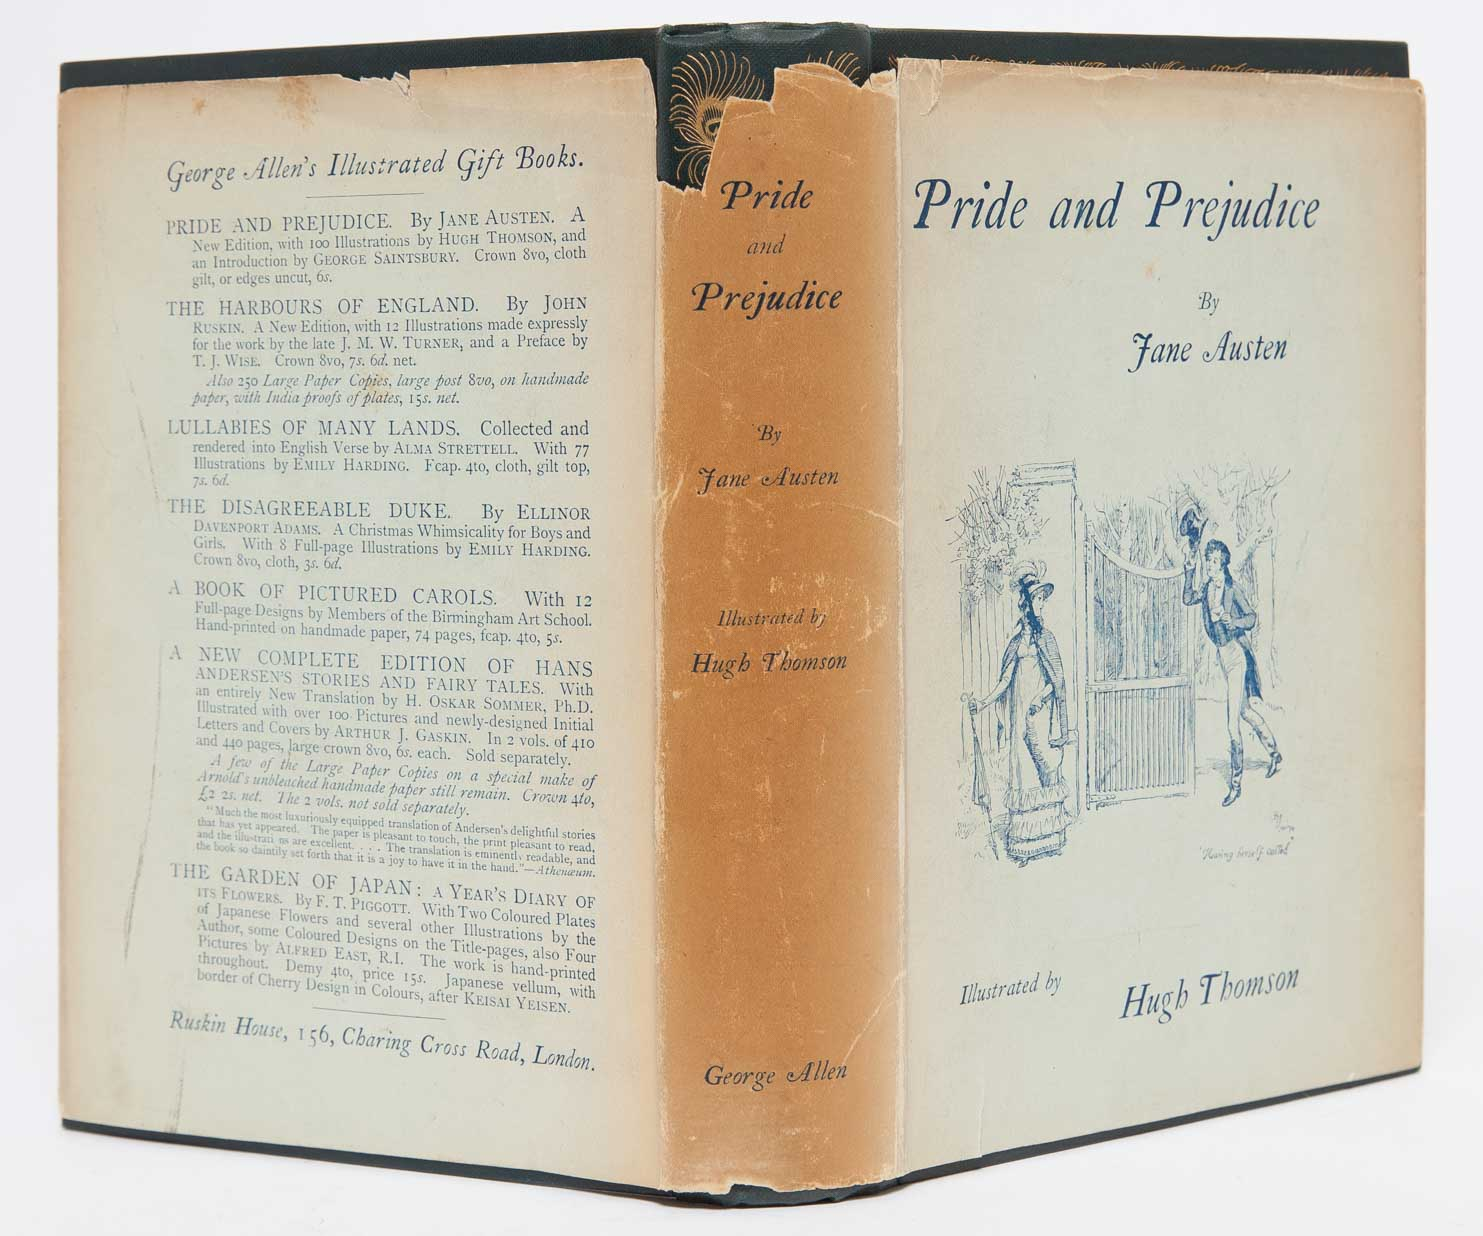 pride and prejudice in dust jacket jane austen illustrator hugh